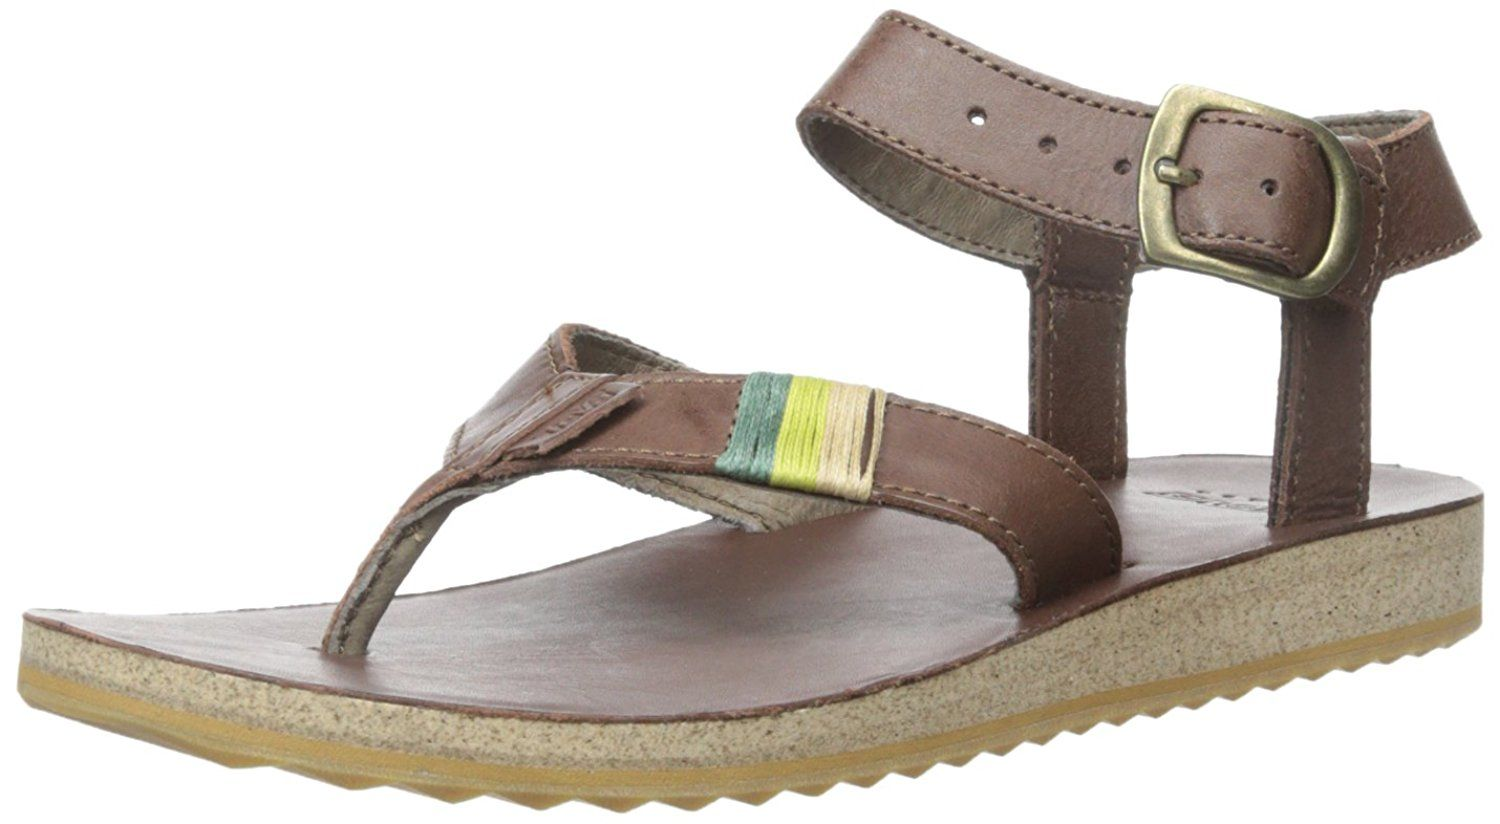 4290fc0a0b72c Teva Women s Original Sandal Leather Sandal   You will love this! More info  here   Teva sandals